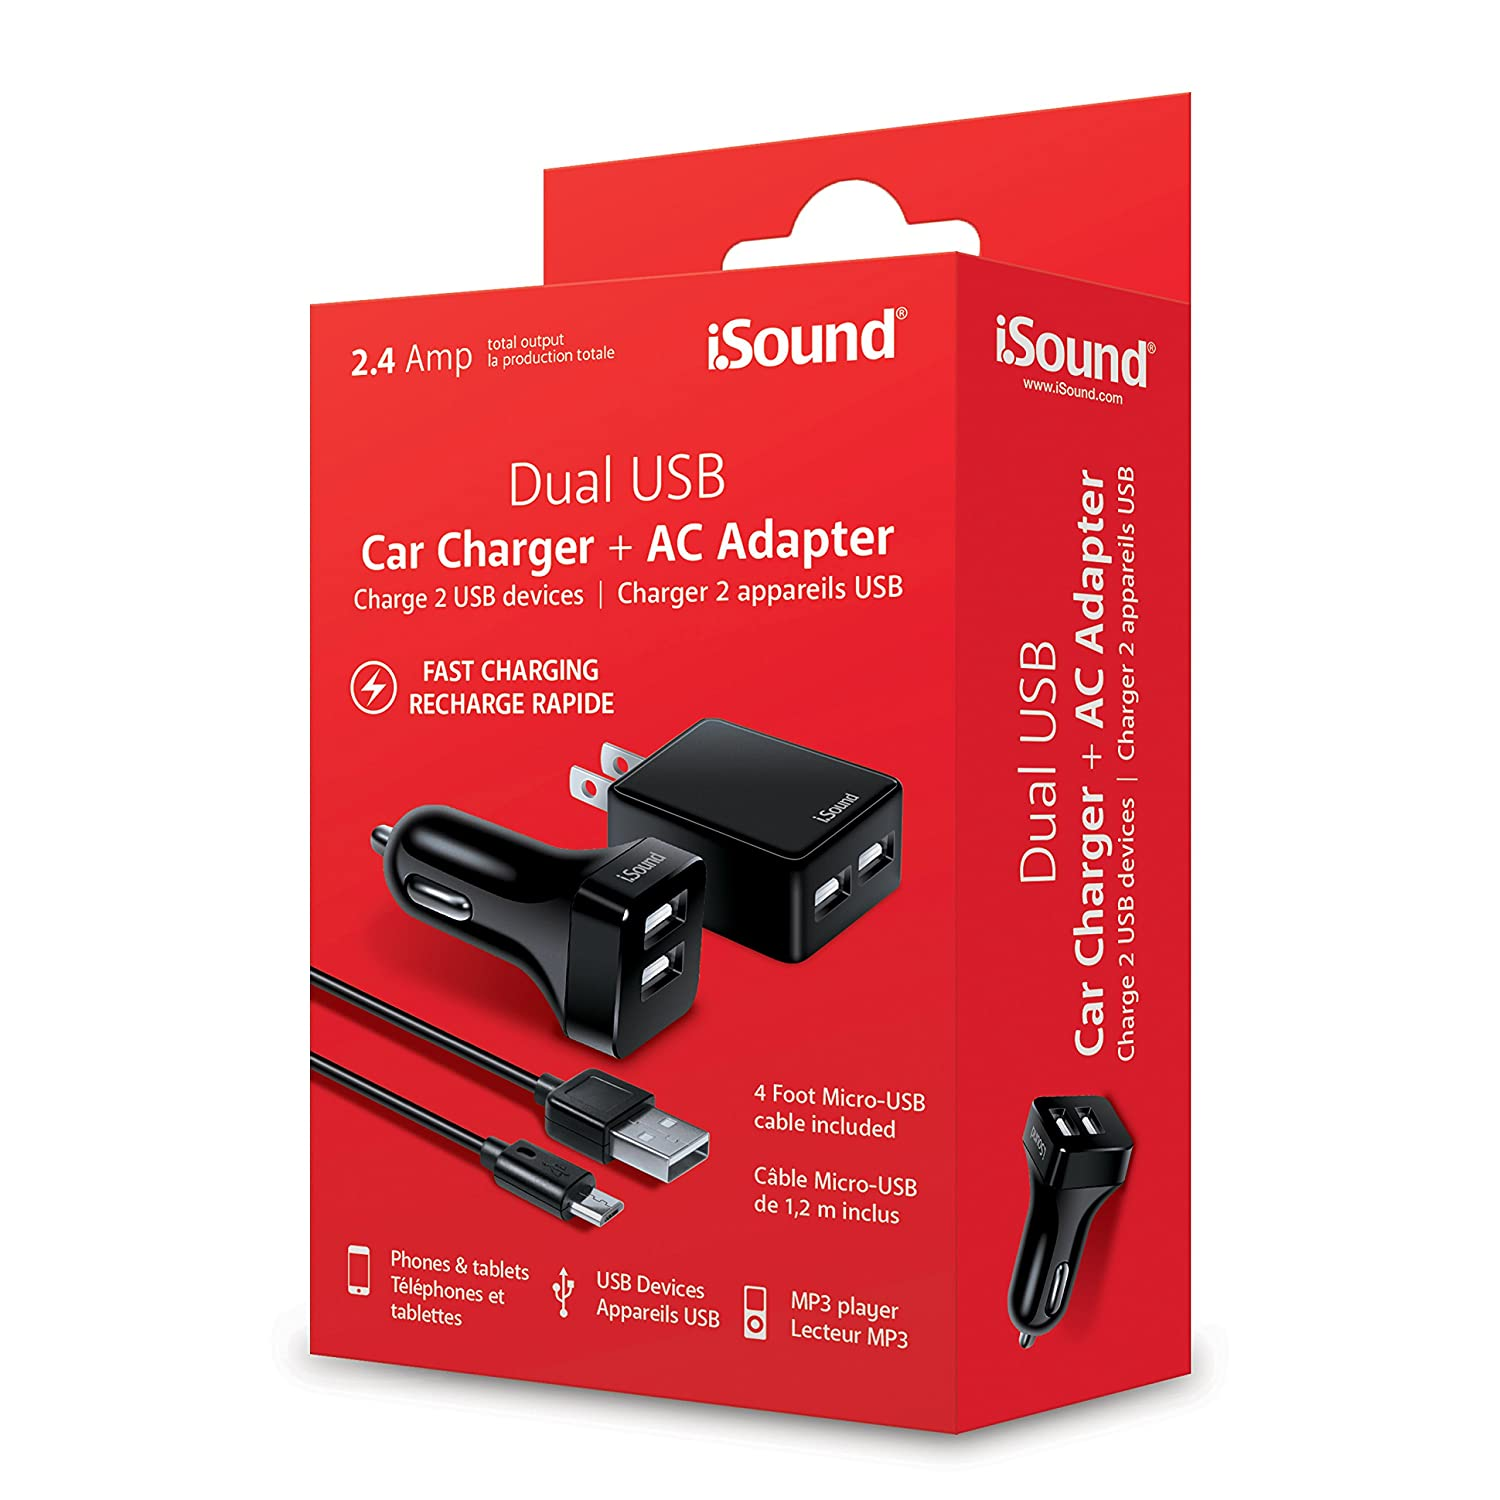 iSound-2.4A Dual USB Car Charger, Wall Charger & Micro-USB Cable-Charge Two Smartphones Simultaneously ISOUND-6857